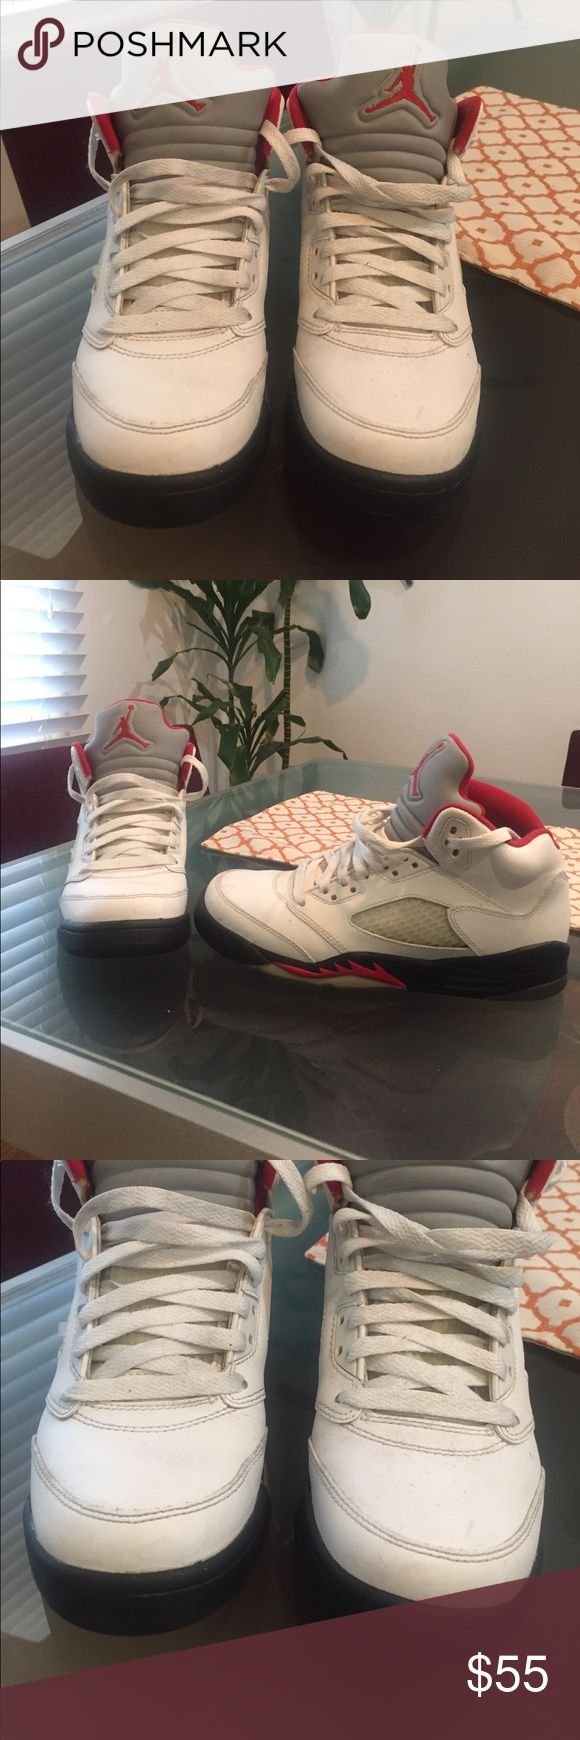 Pre-Owned Nike Air Jordan 5 Retro Fire Red- Black Pre-Owned Nike Air Jordan 5 Retro Fire Red- Black. Size is 6Y. See pictures for condition! Air Jordan Shoes Sneakers